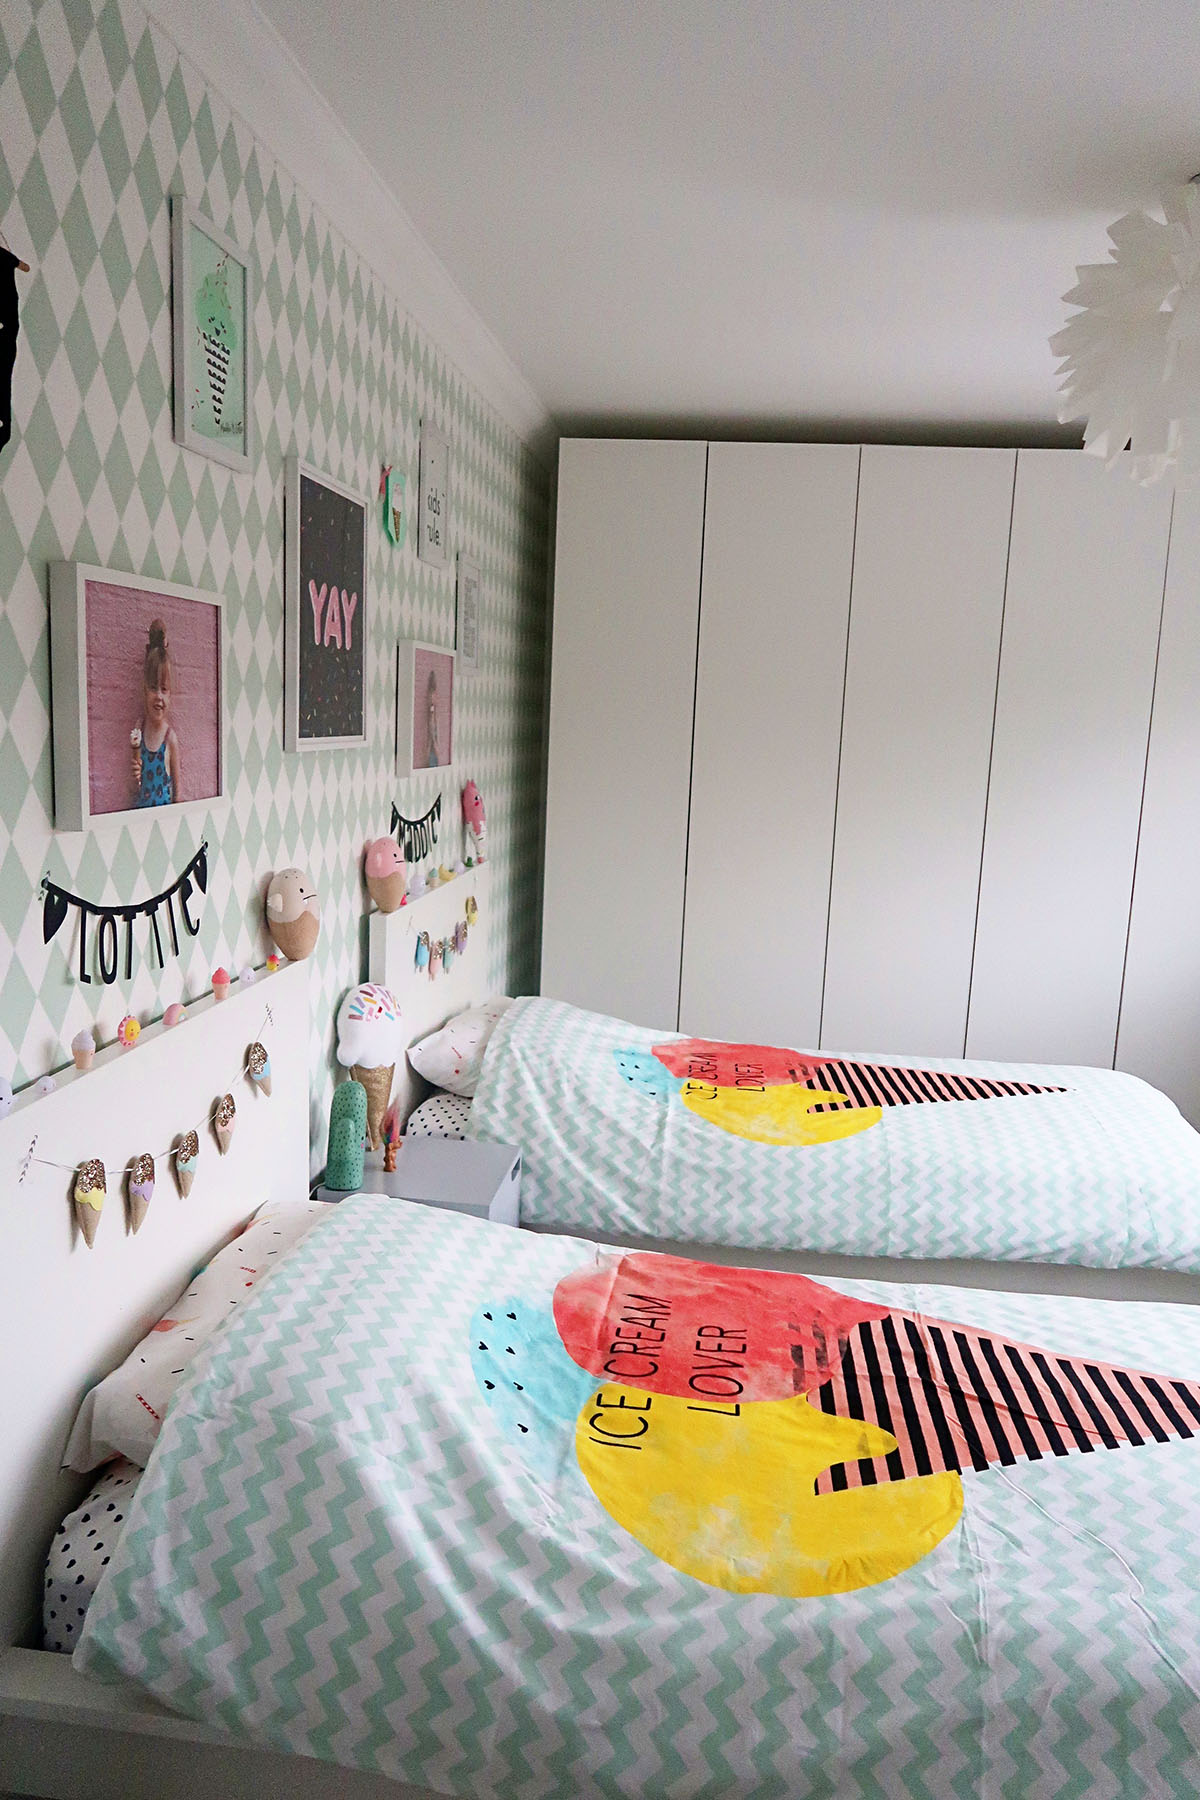 My Girls Shared Bedroom Tour- An Ice Cream themed room {Home Renovation Project #4}